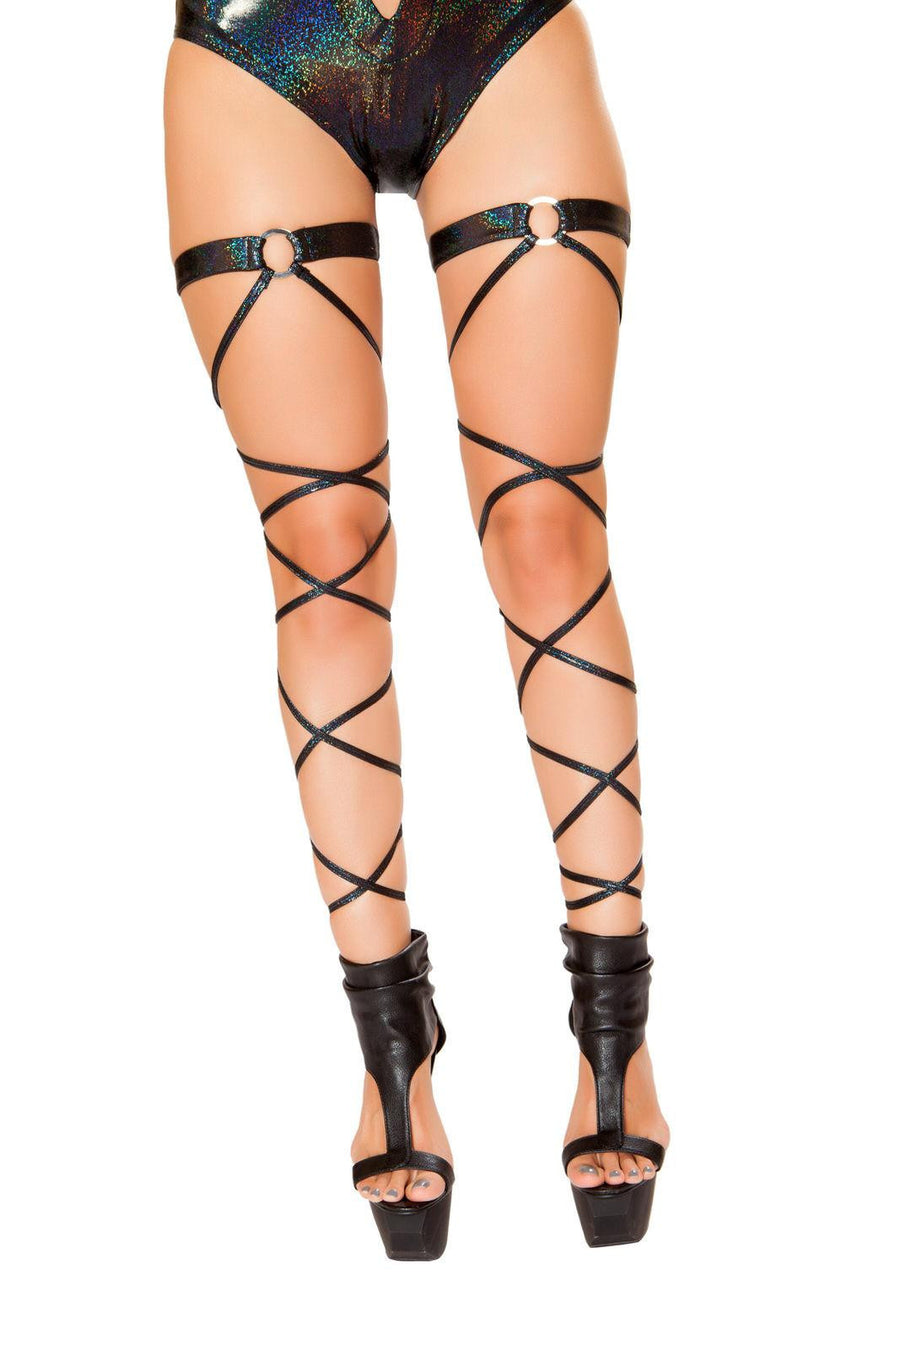 Pair of Shimmer Leg Wraps with O-Ring Garter - Roma Costume, YourLamode